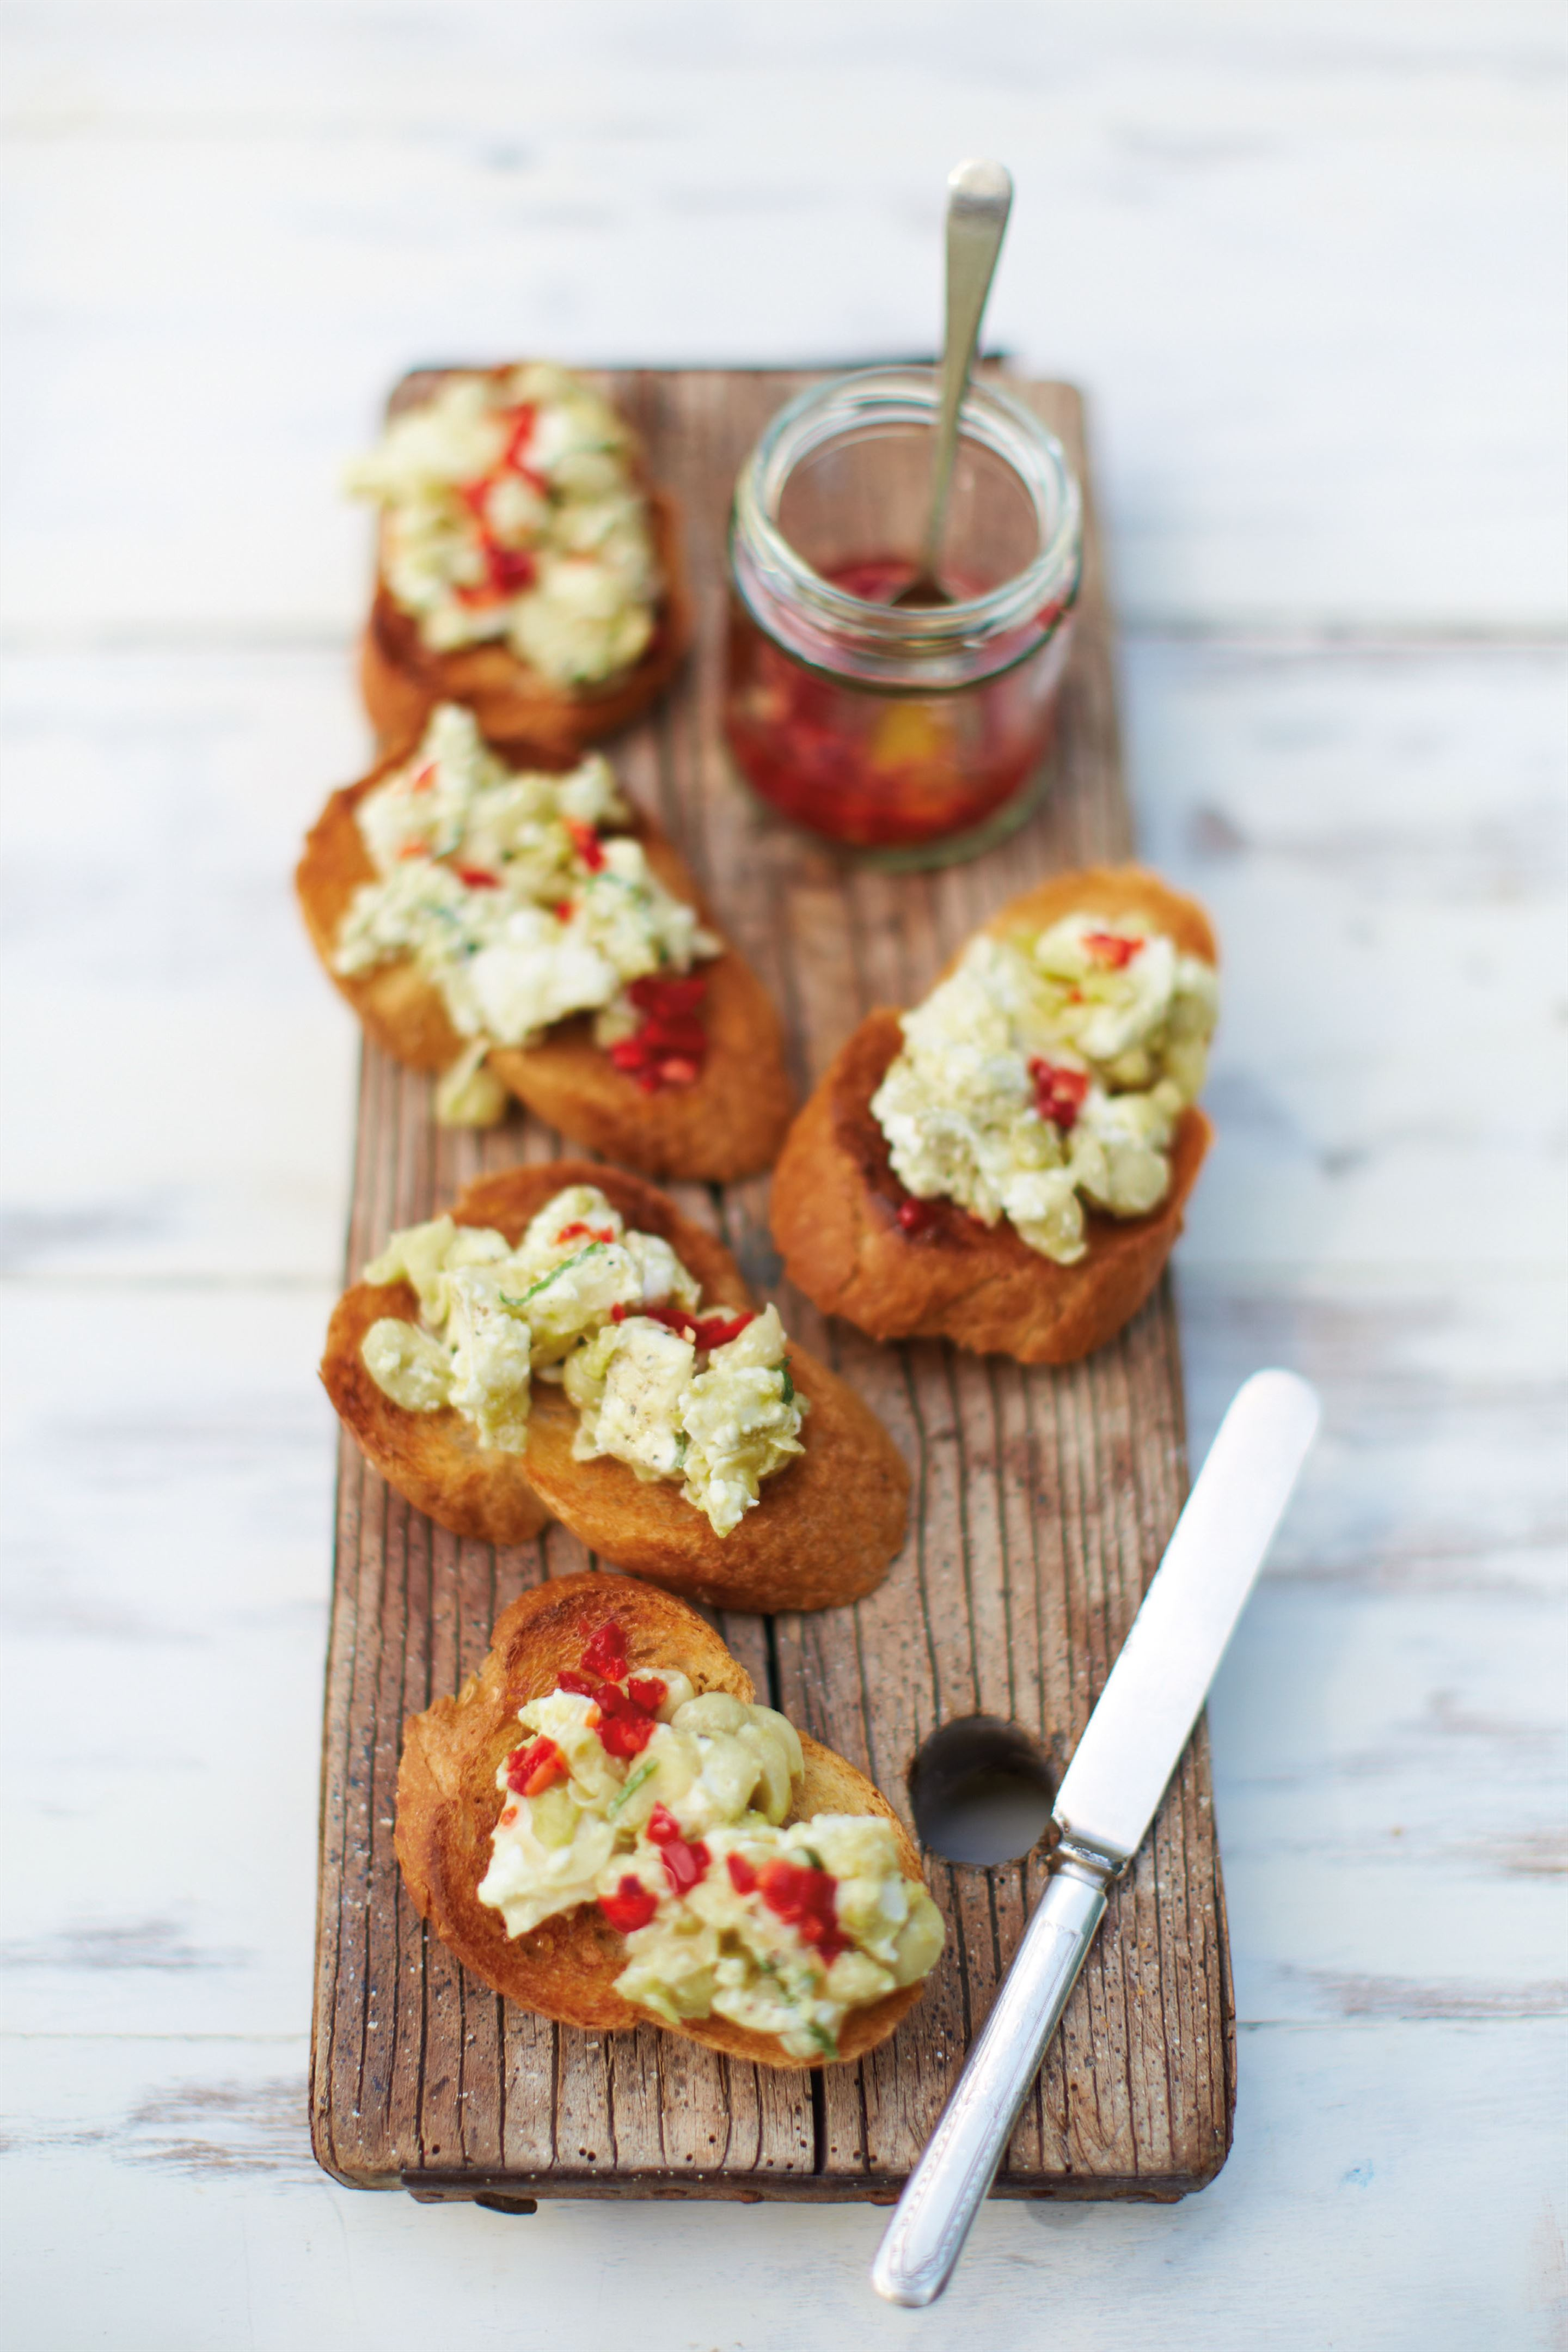 Goat's cheese, mint and broad bean pâté on chilli toasts